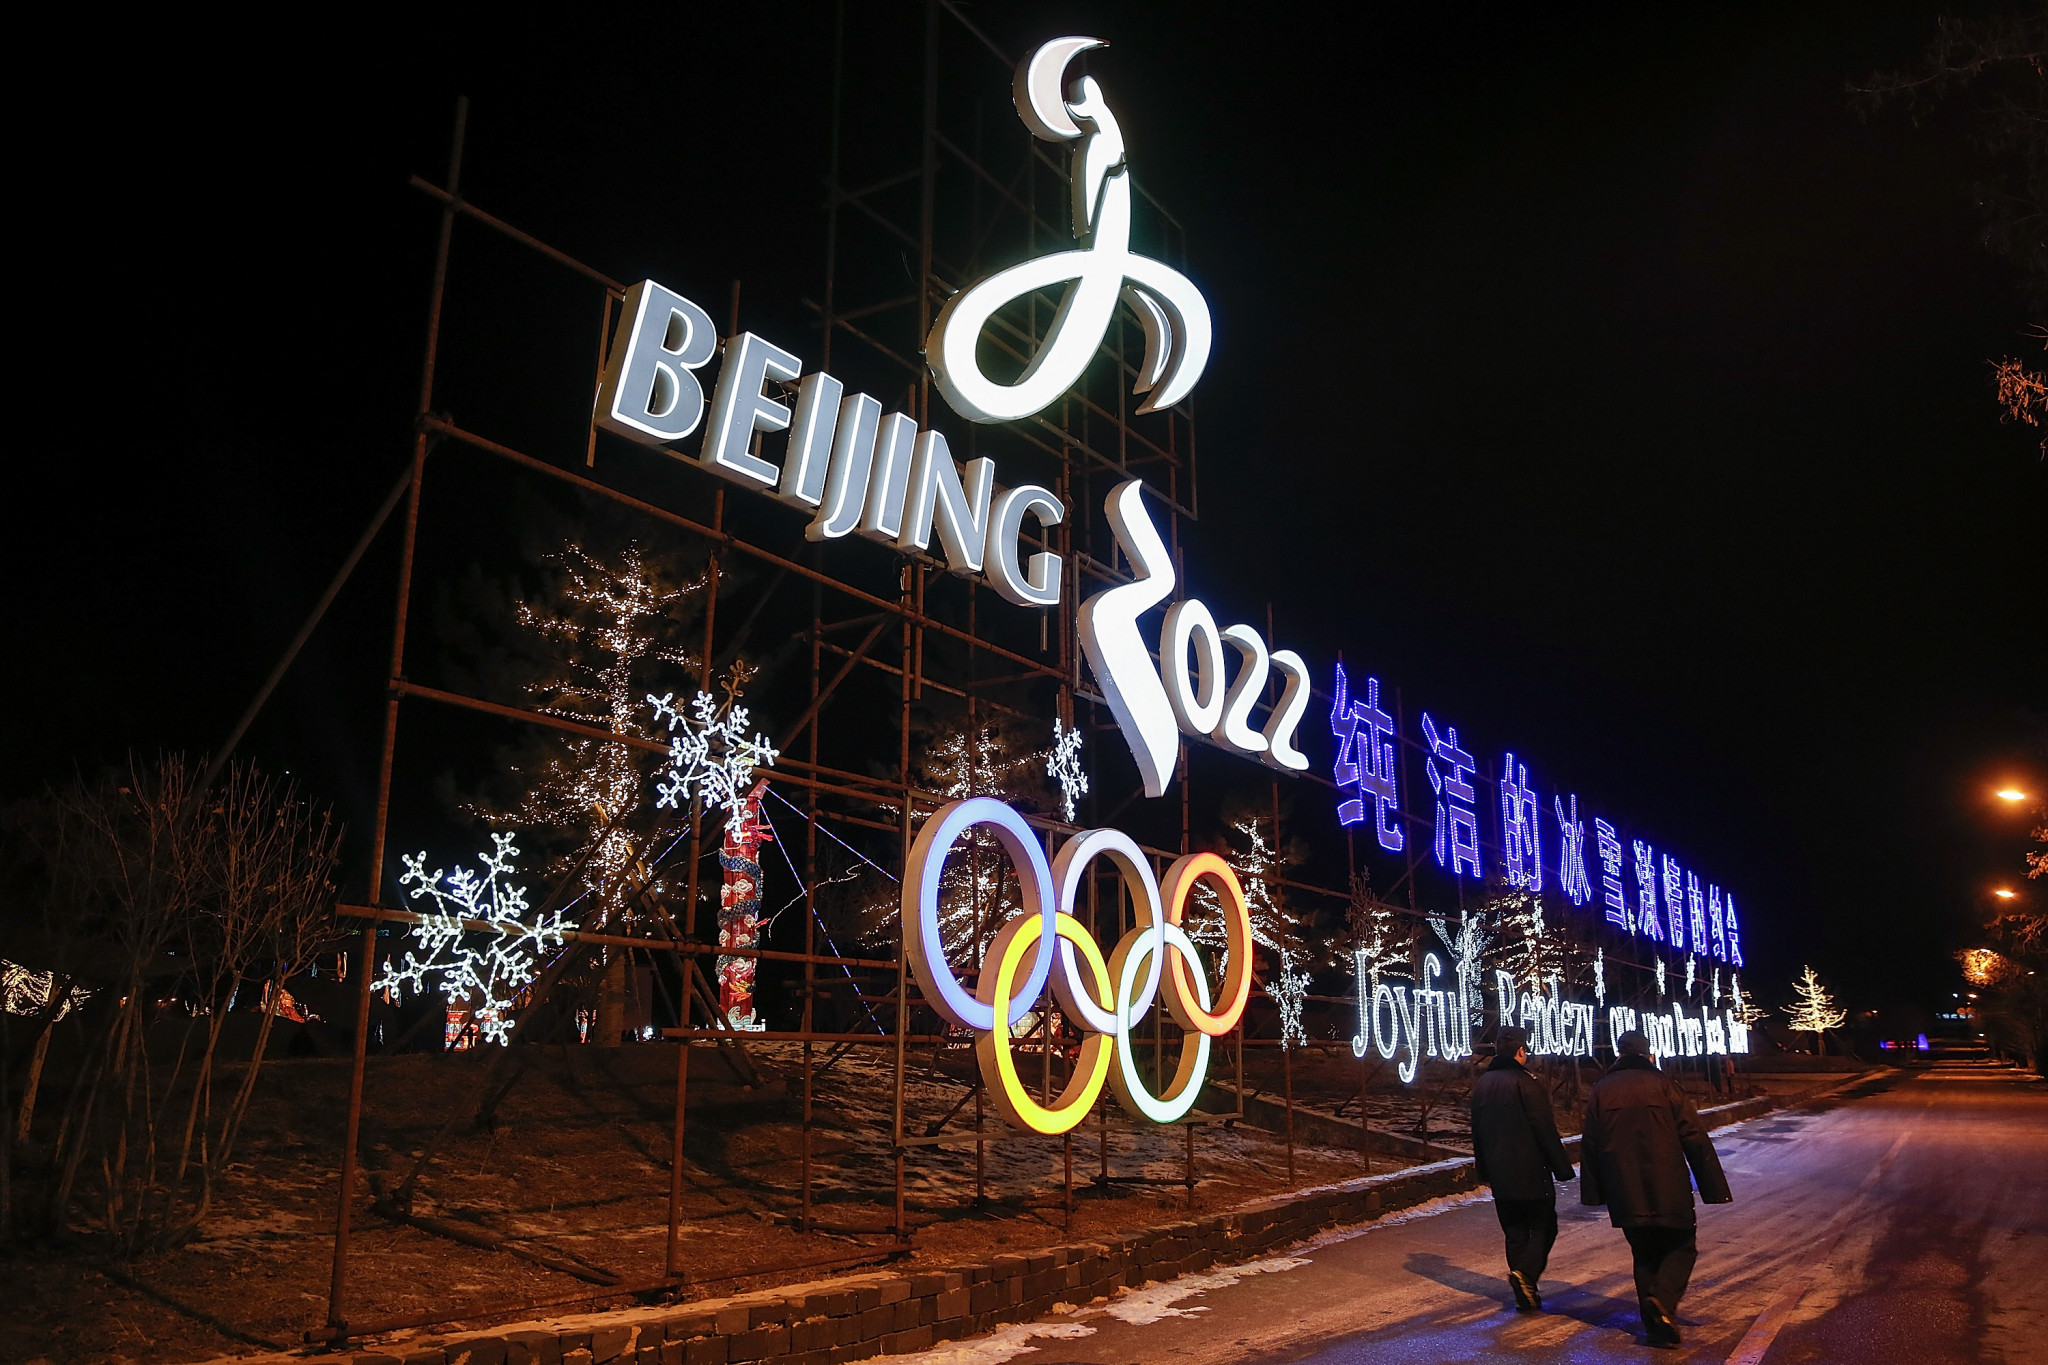 Japanese Olympic Committee cancel Beijing 2022 visit due to coronavirus outbreak